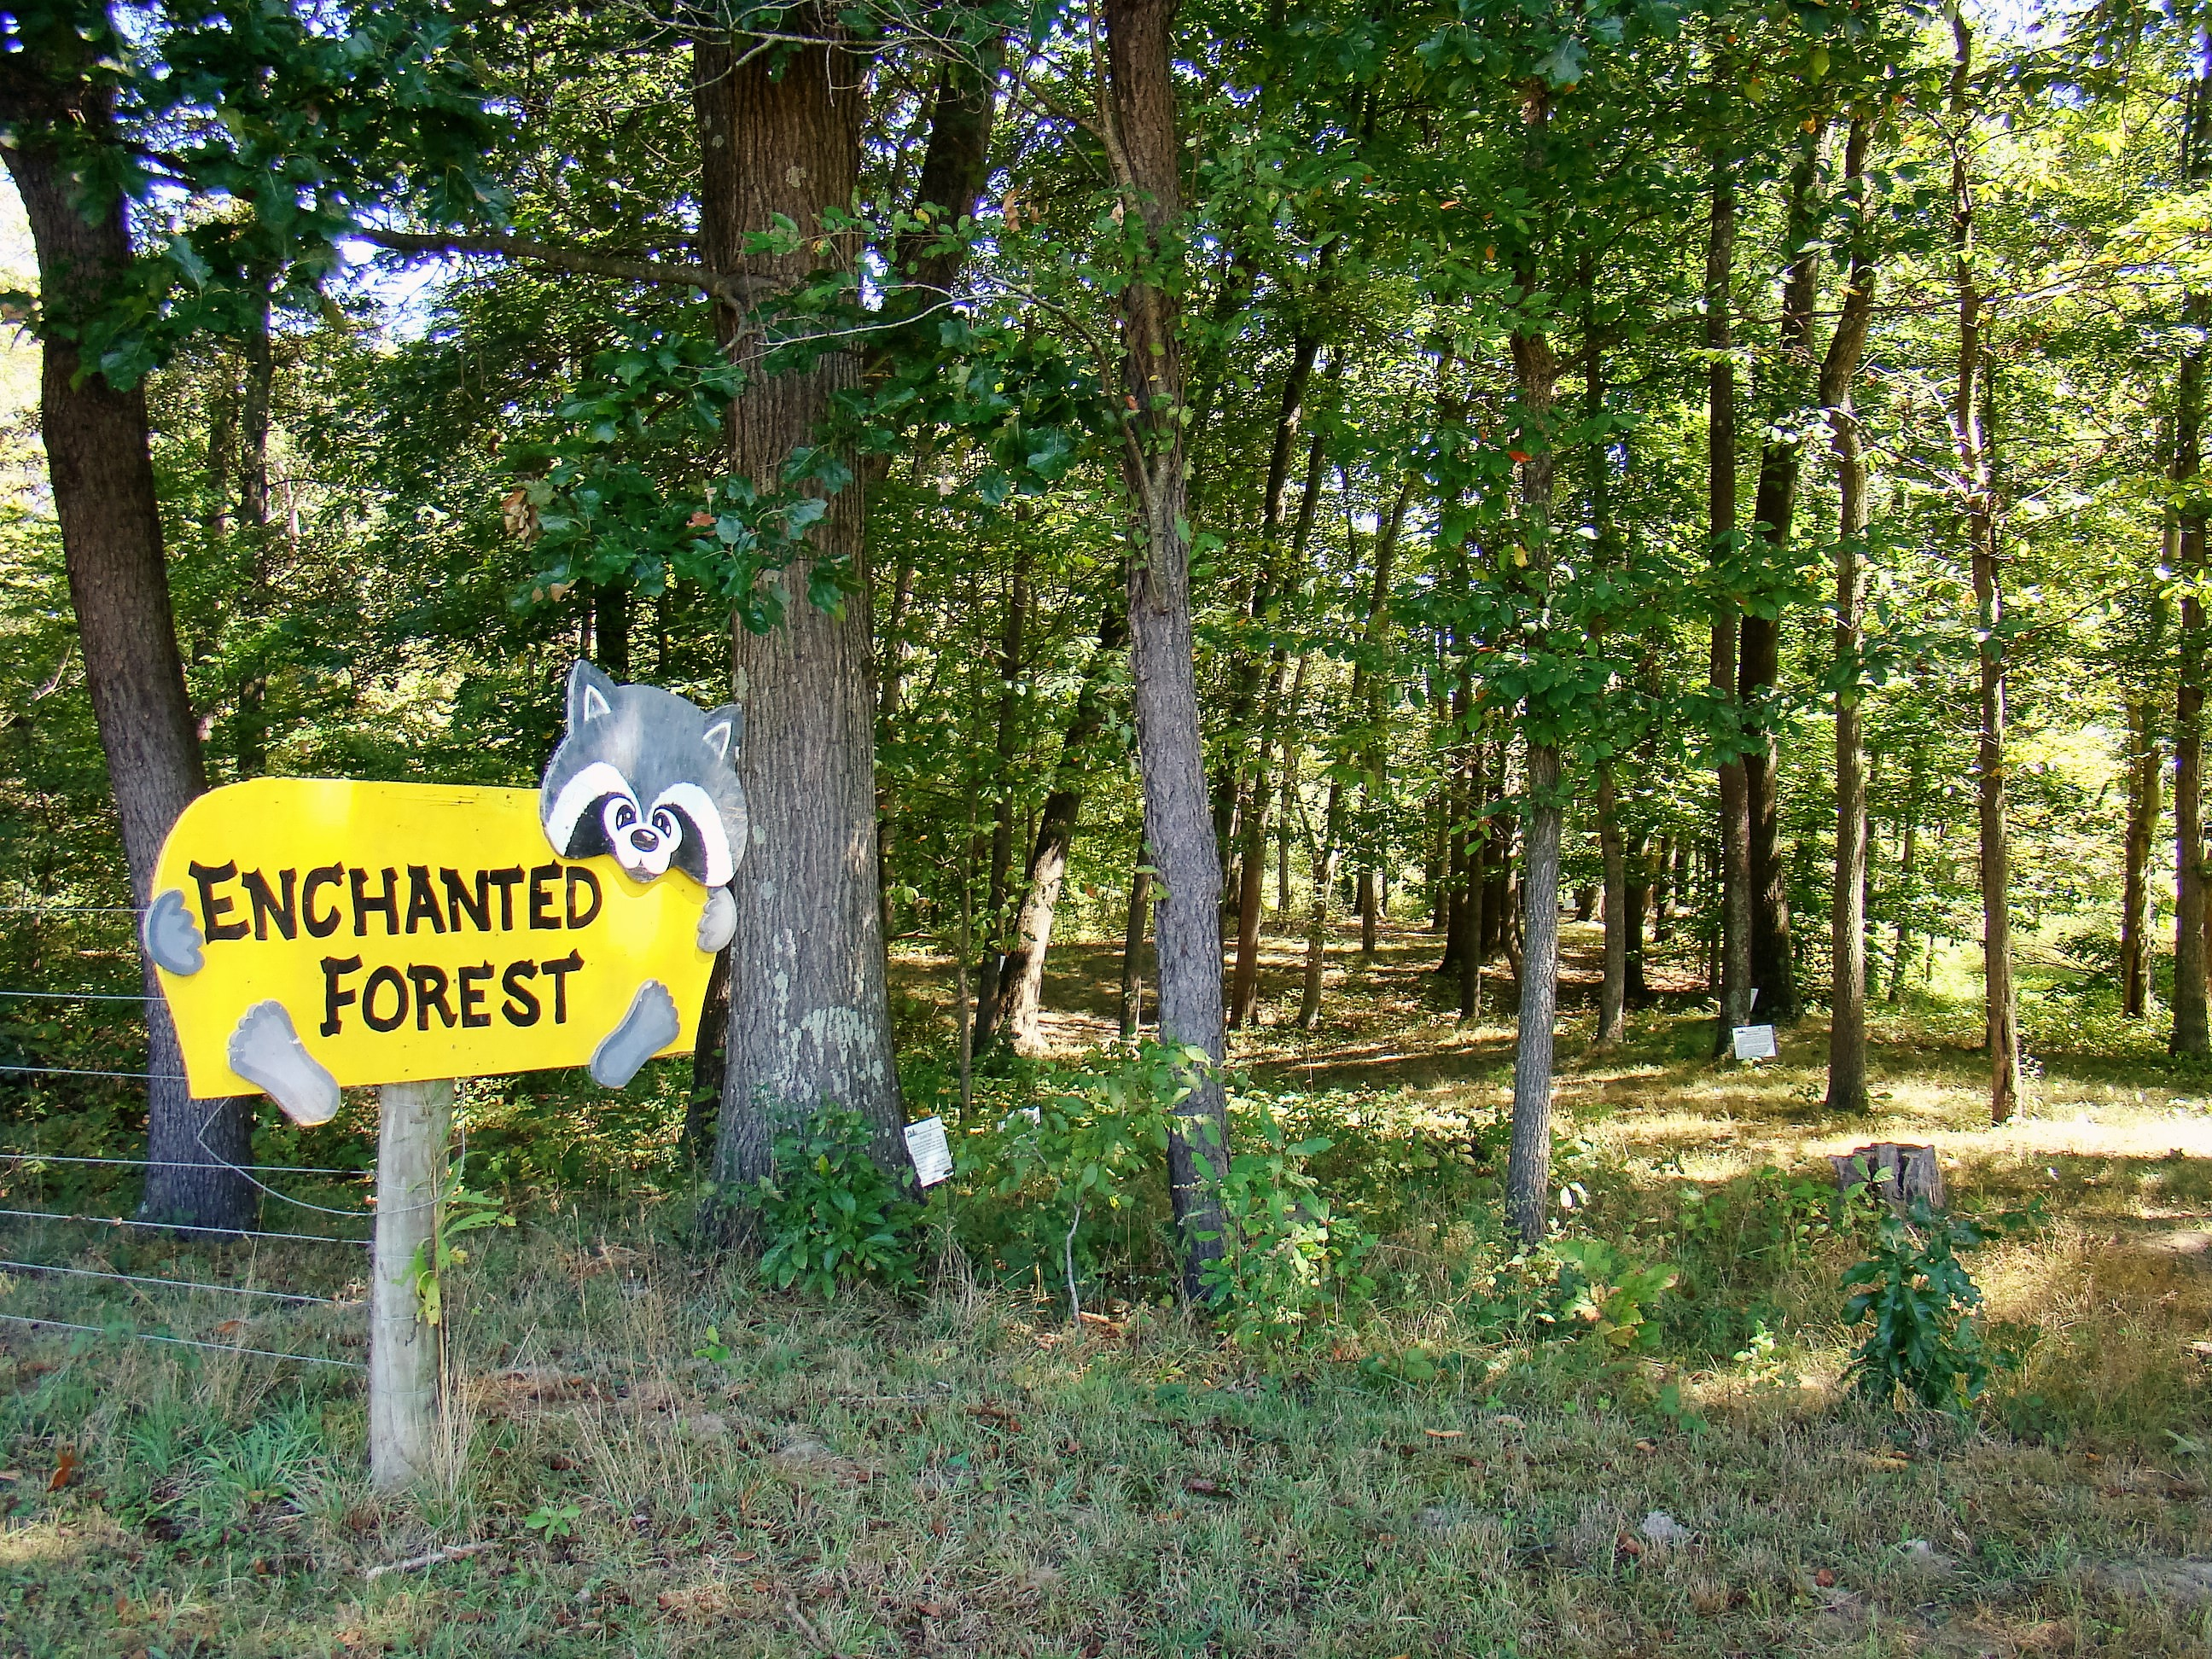 Take a walk in the Enchanted Forest and discover how early farmers lived.